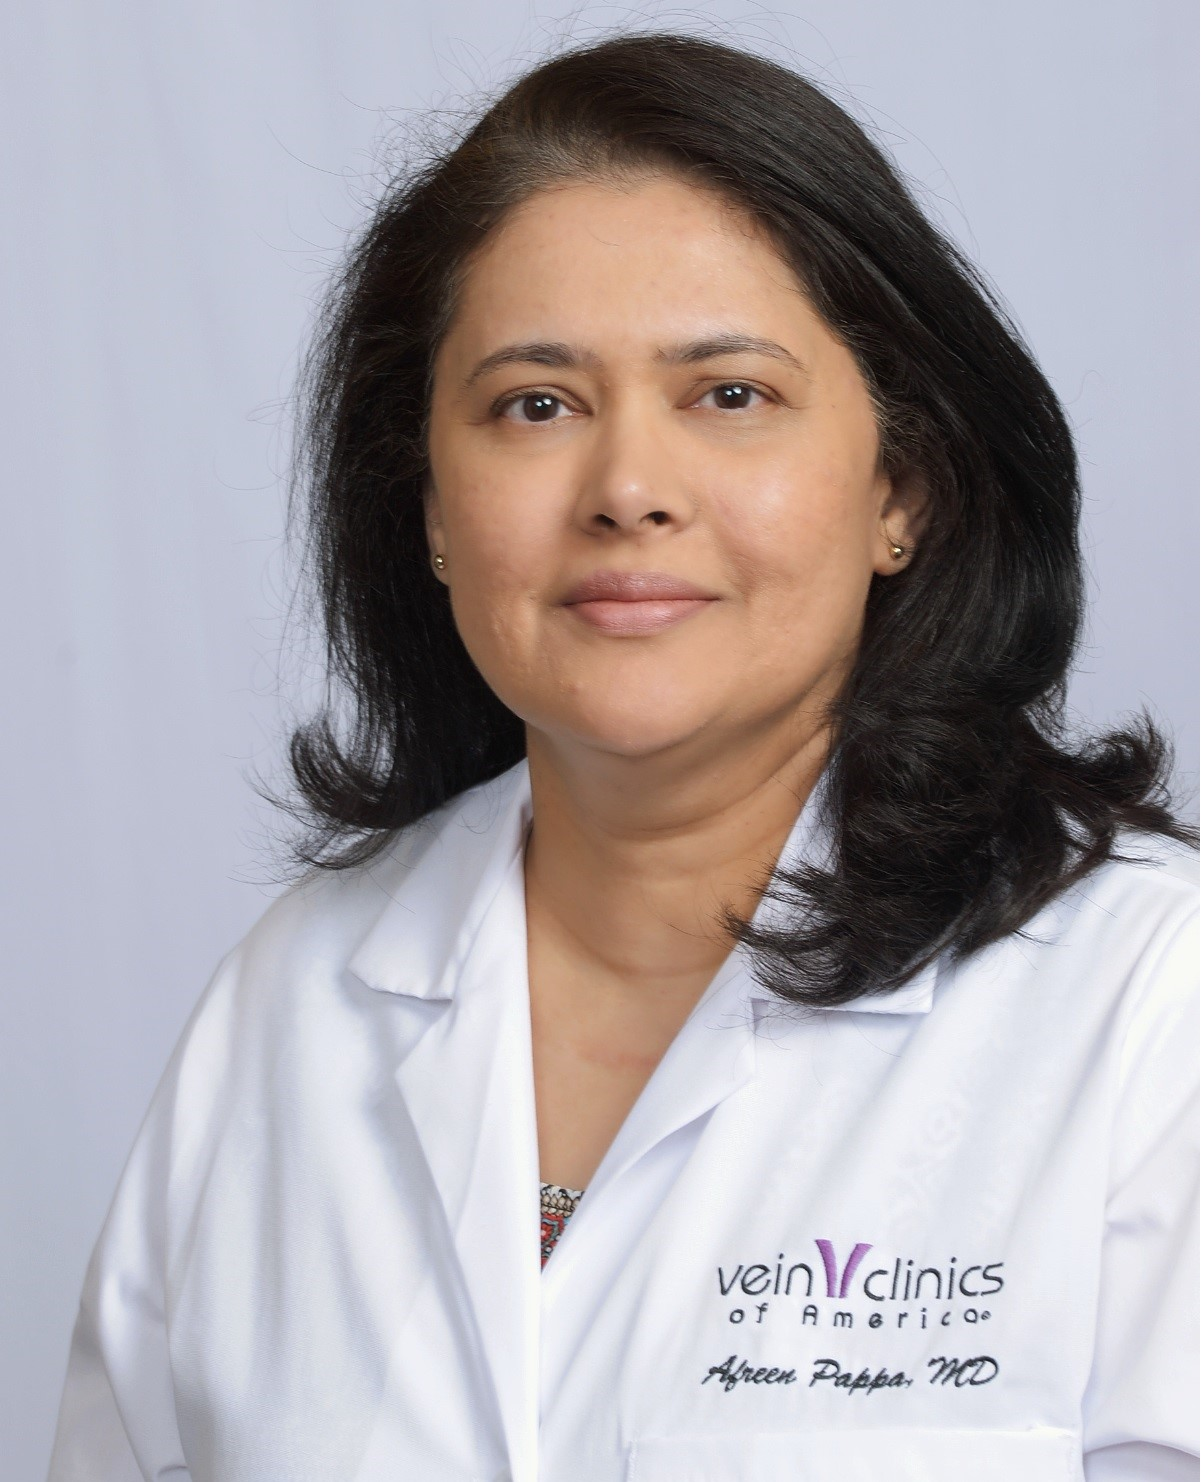 Dr. Afreen Pappa MD